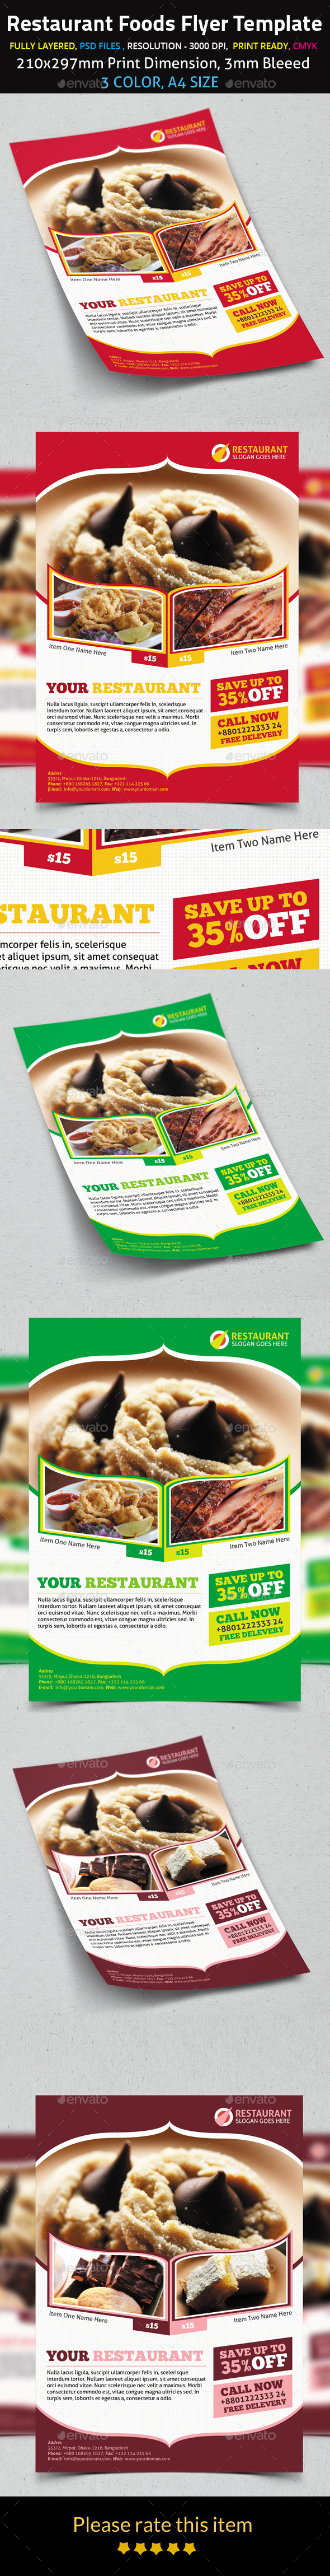 Restaurant Foods Flyer Template - Restaurant Flyers